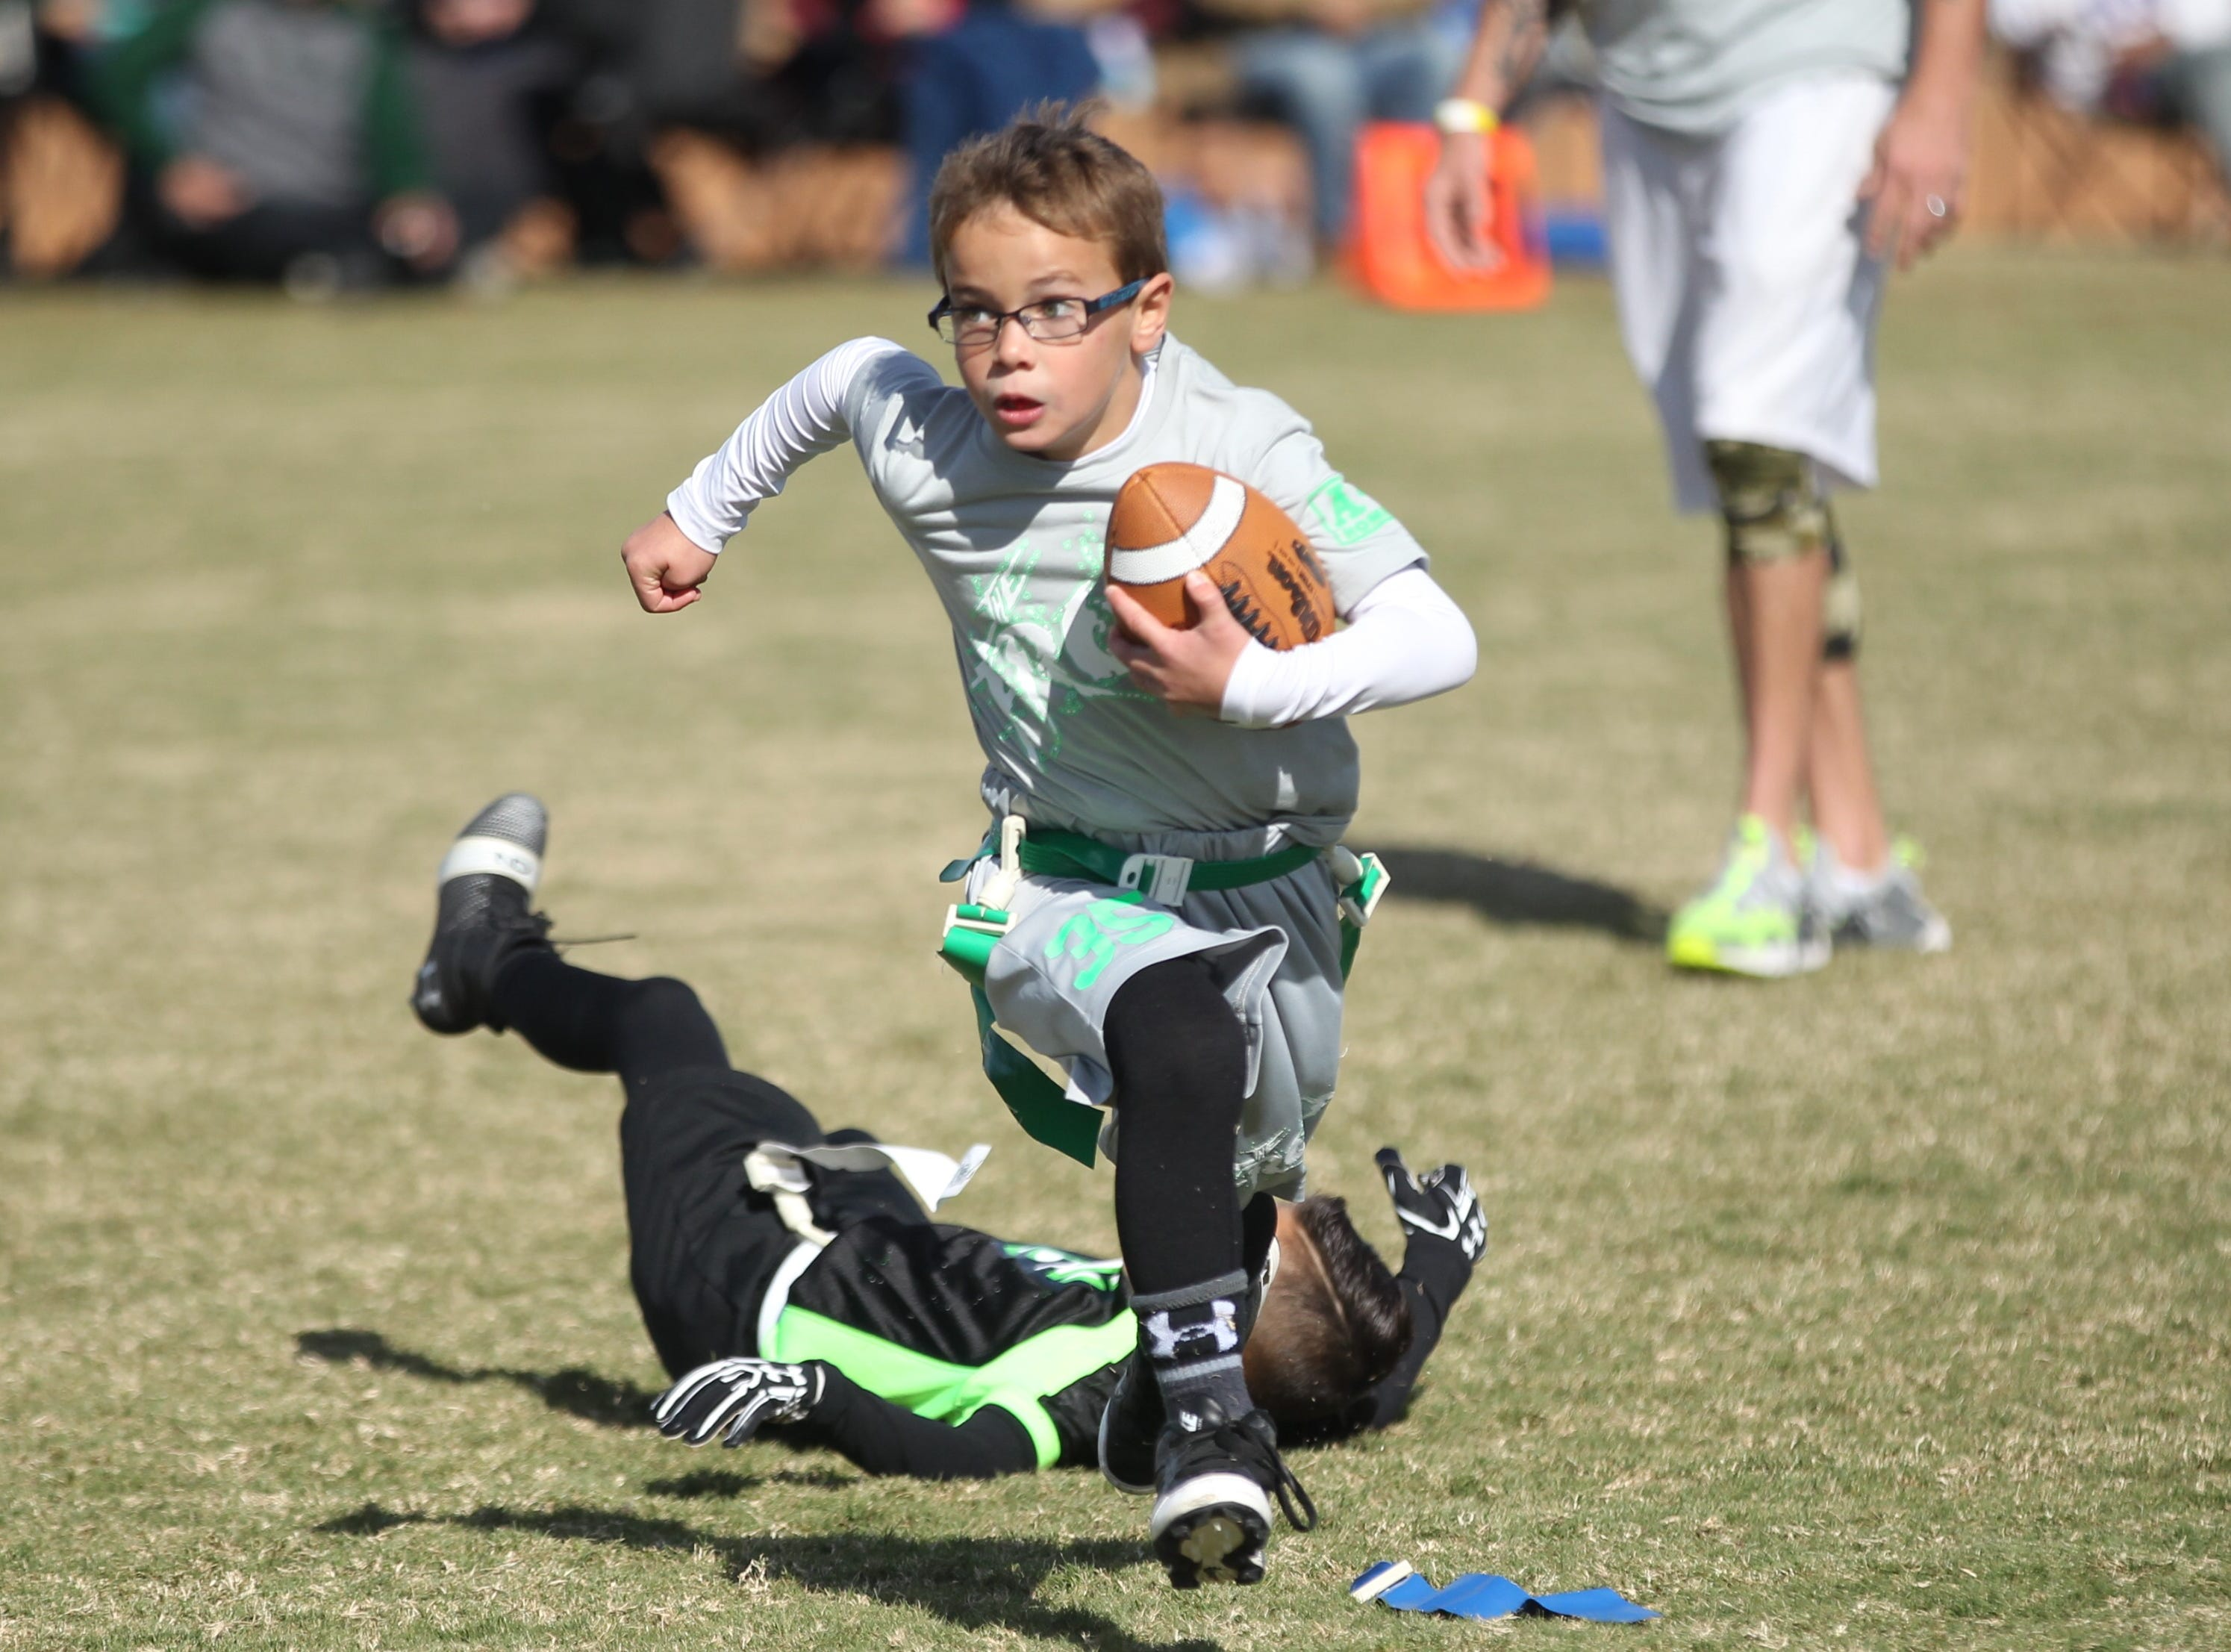 The Front's Barrett Stone gets past a San Angelo Seahawks player during the championship game of the 6u TAAF State Youth Flag Football Tournament at the Texas Bank Sports Complex on Sunday, Nov. 11, 2018. The Front won a defensive battle 13-0.